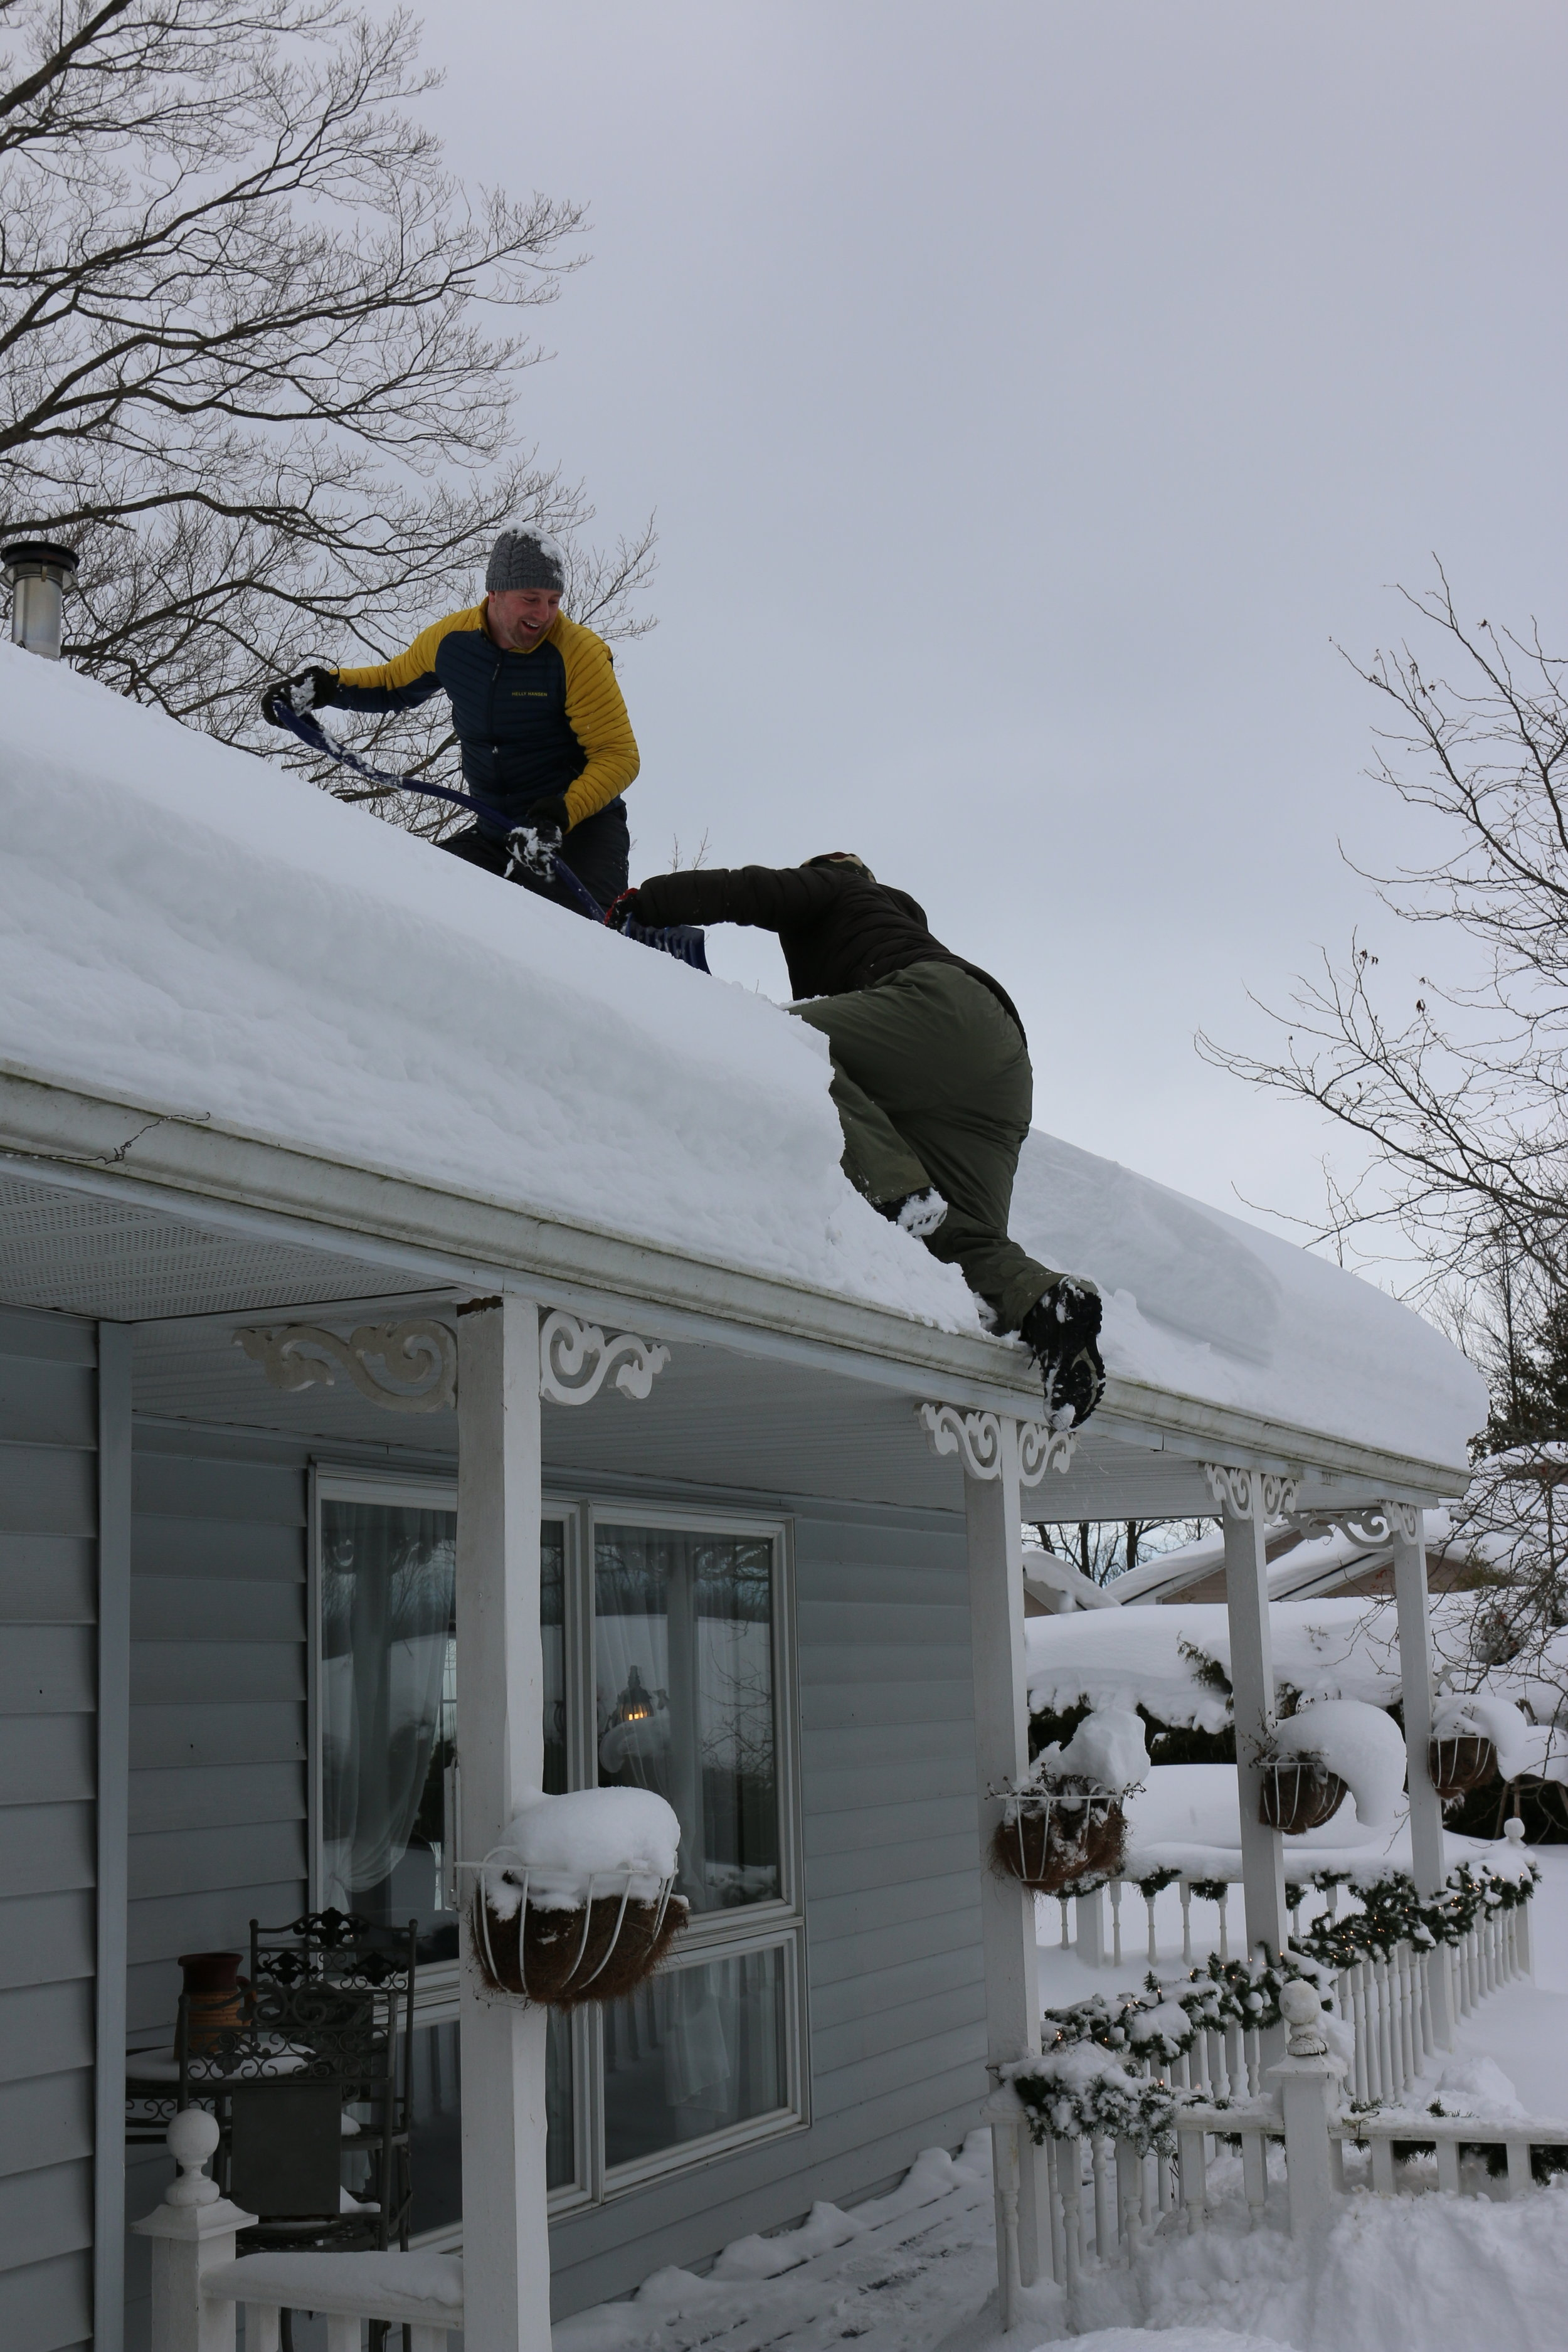 Getting up on the roof to shovel the snowfall